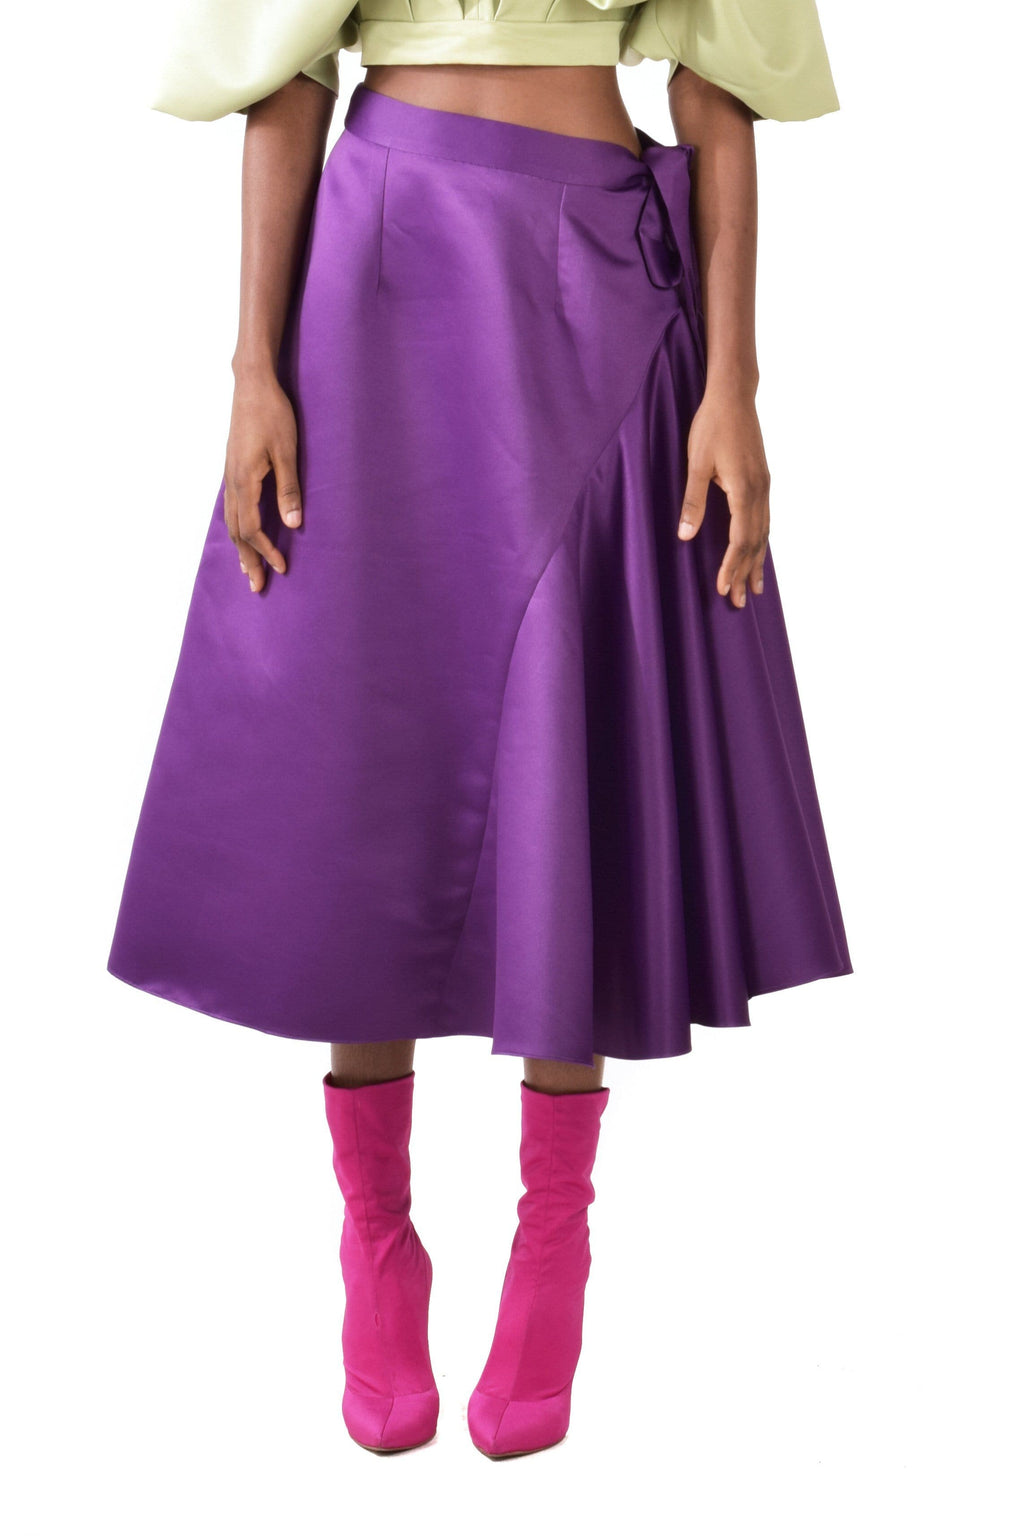 Midi A-line Purple Skirt With Ruffles - BYTRIBUTE